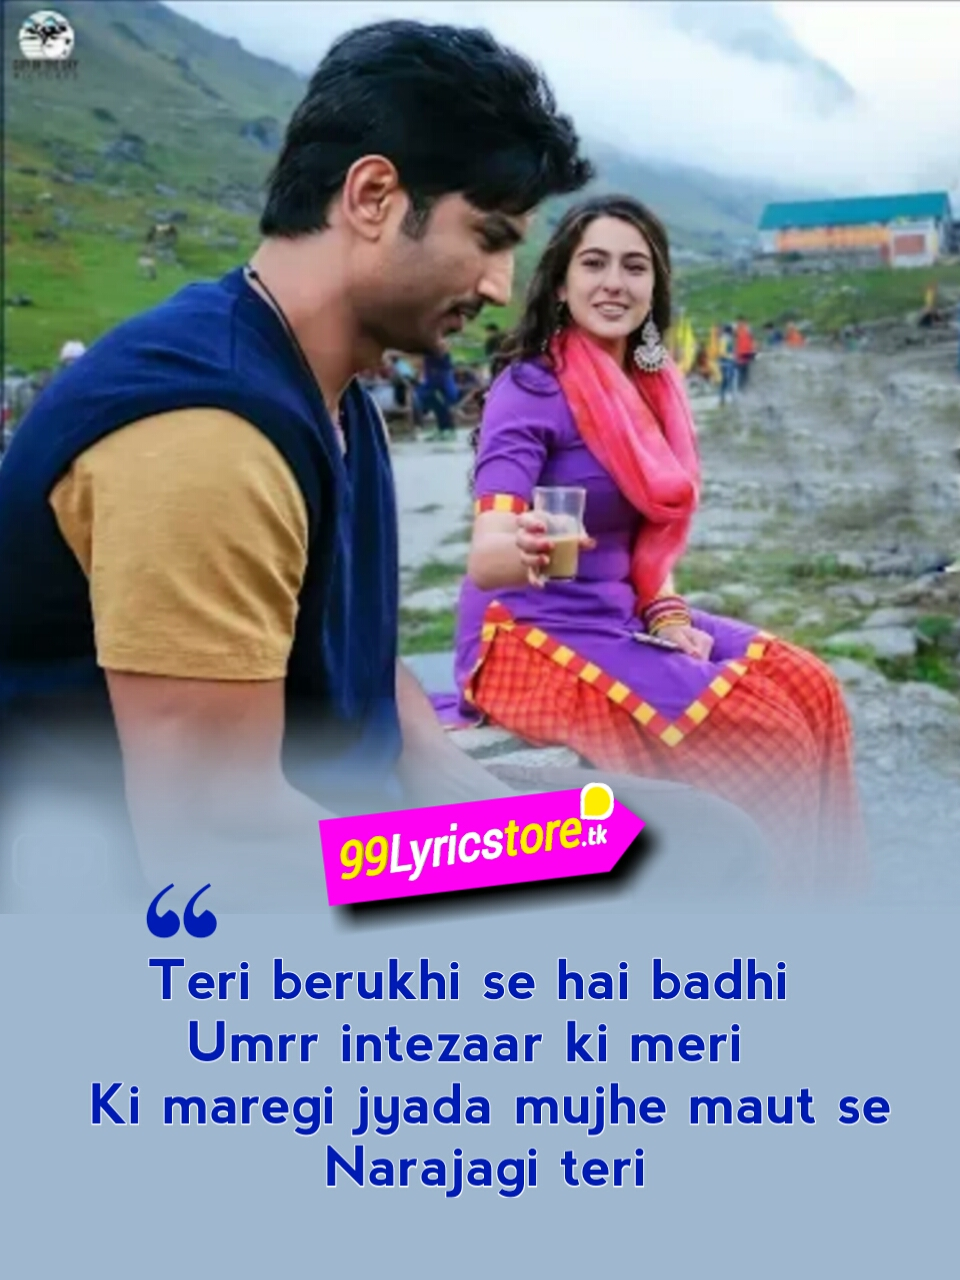 Shushant Singh Rajput Song Lyrics, Sara Ali Khan images, Amit Trivedi Song Lyrics, Love Quotes in Hindi, Bollywood movie Song Lyrics, Hindi Song Lyrics